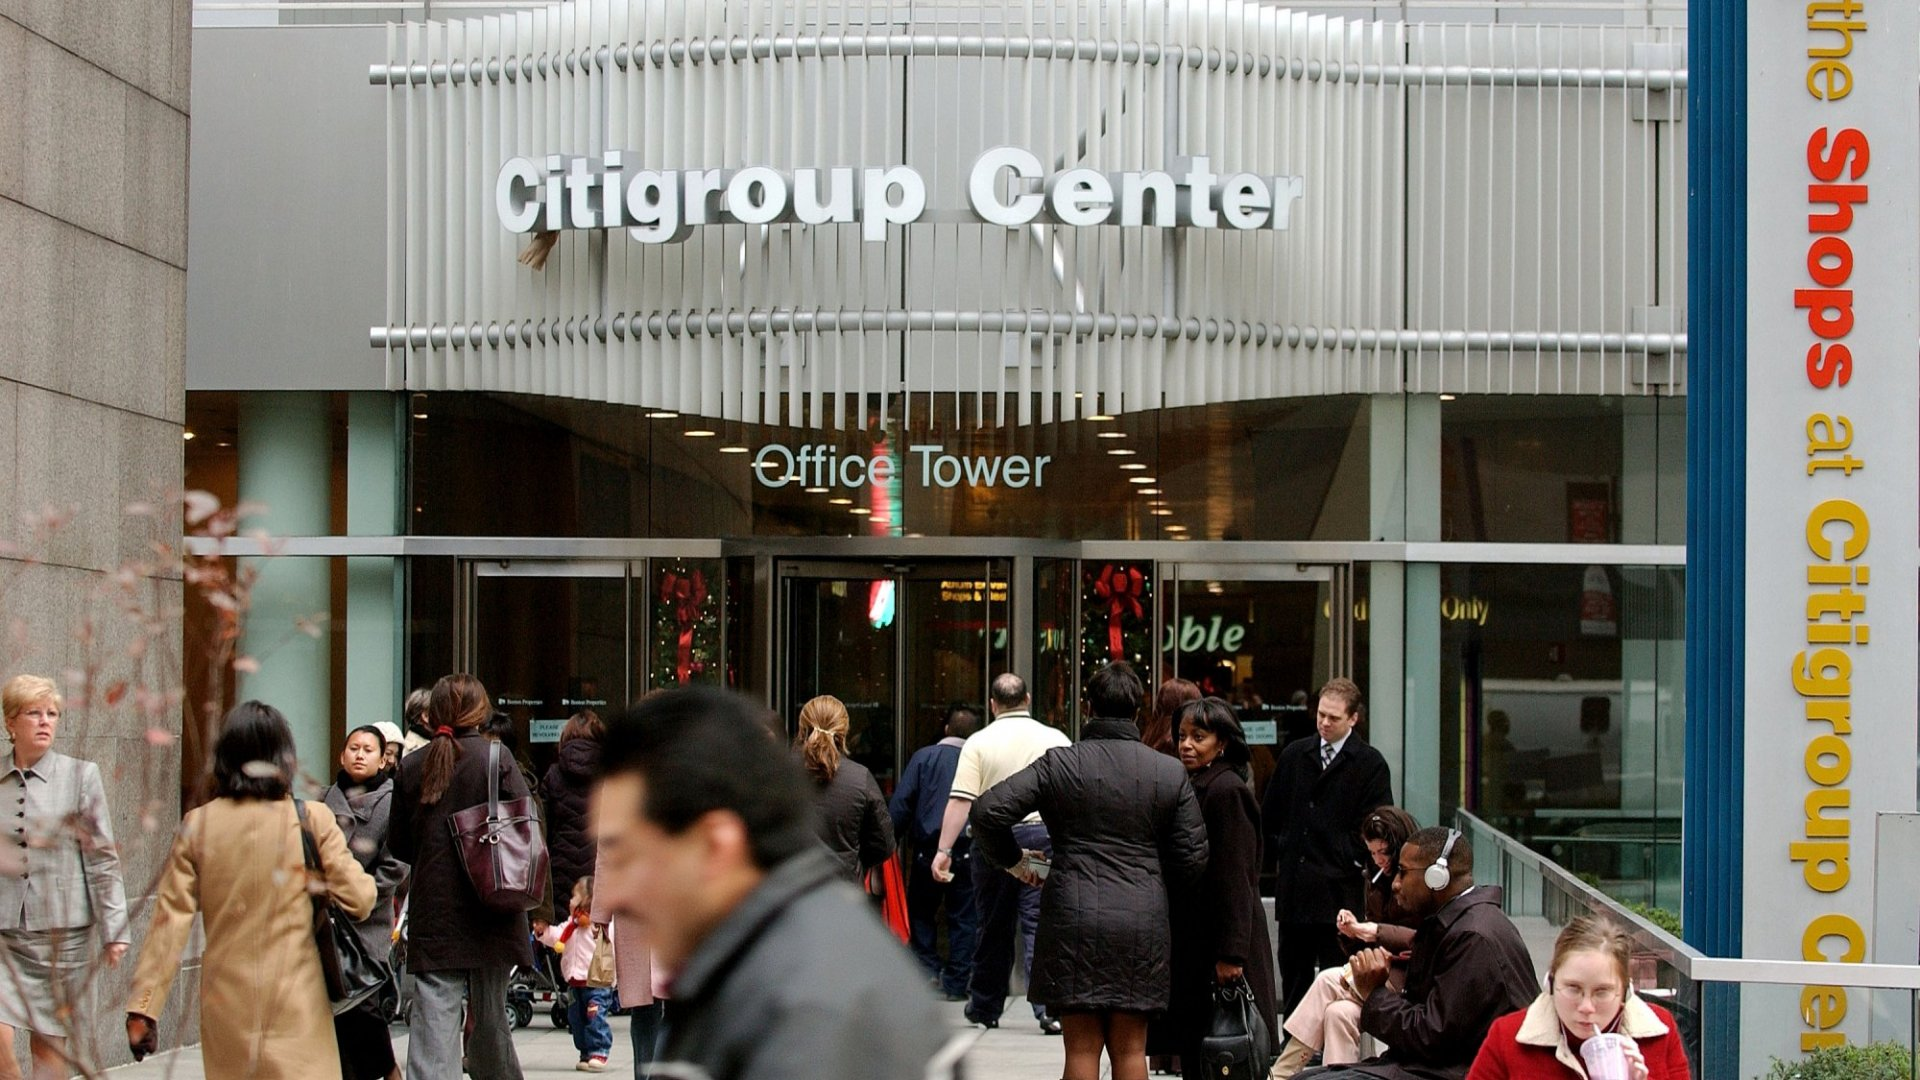 Citigroup Pays Women 71 Percent of What Men Earn, and I'm Totally Okay With That